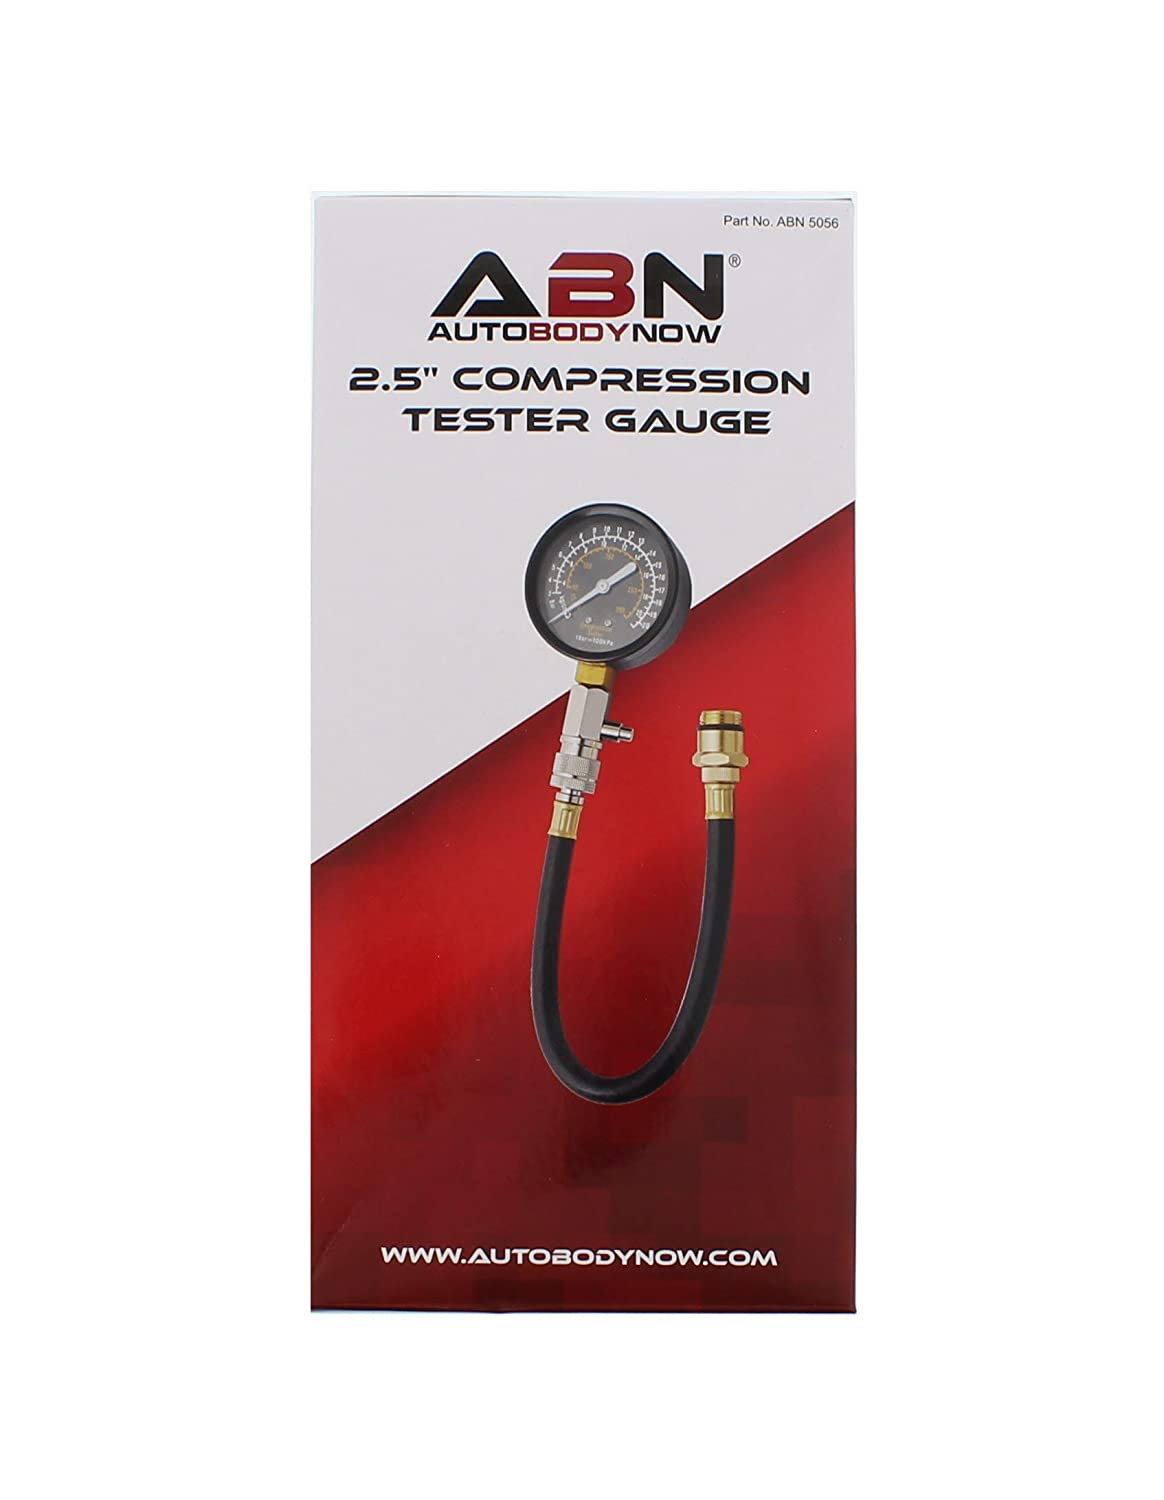 ABN Compression Tester and Adapters Dual Automotive Compression Gauge with 14mm and 18mm Compression Tester Adapter